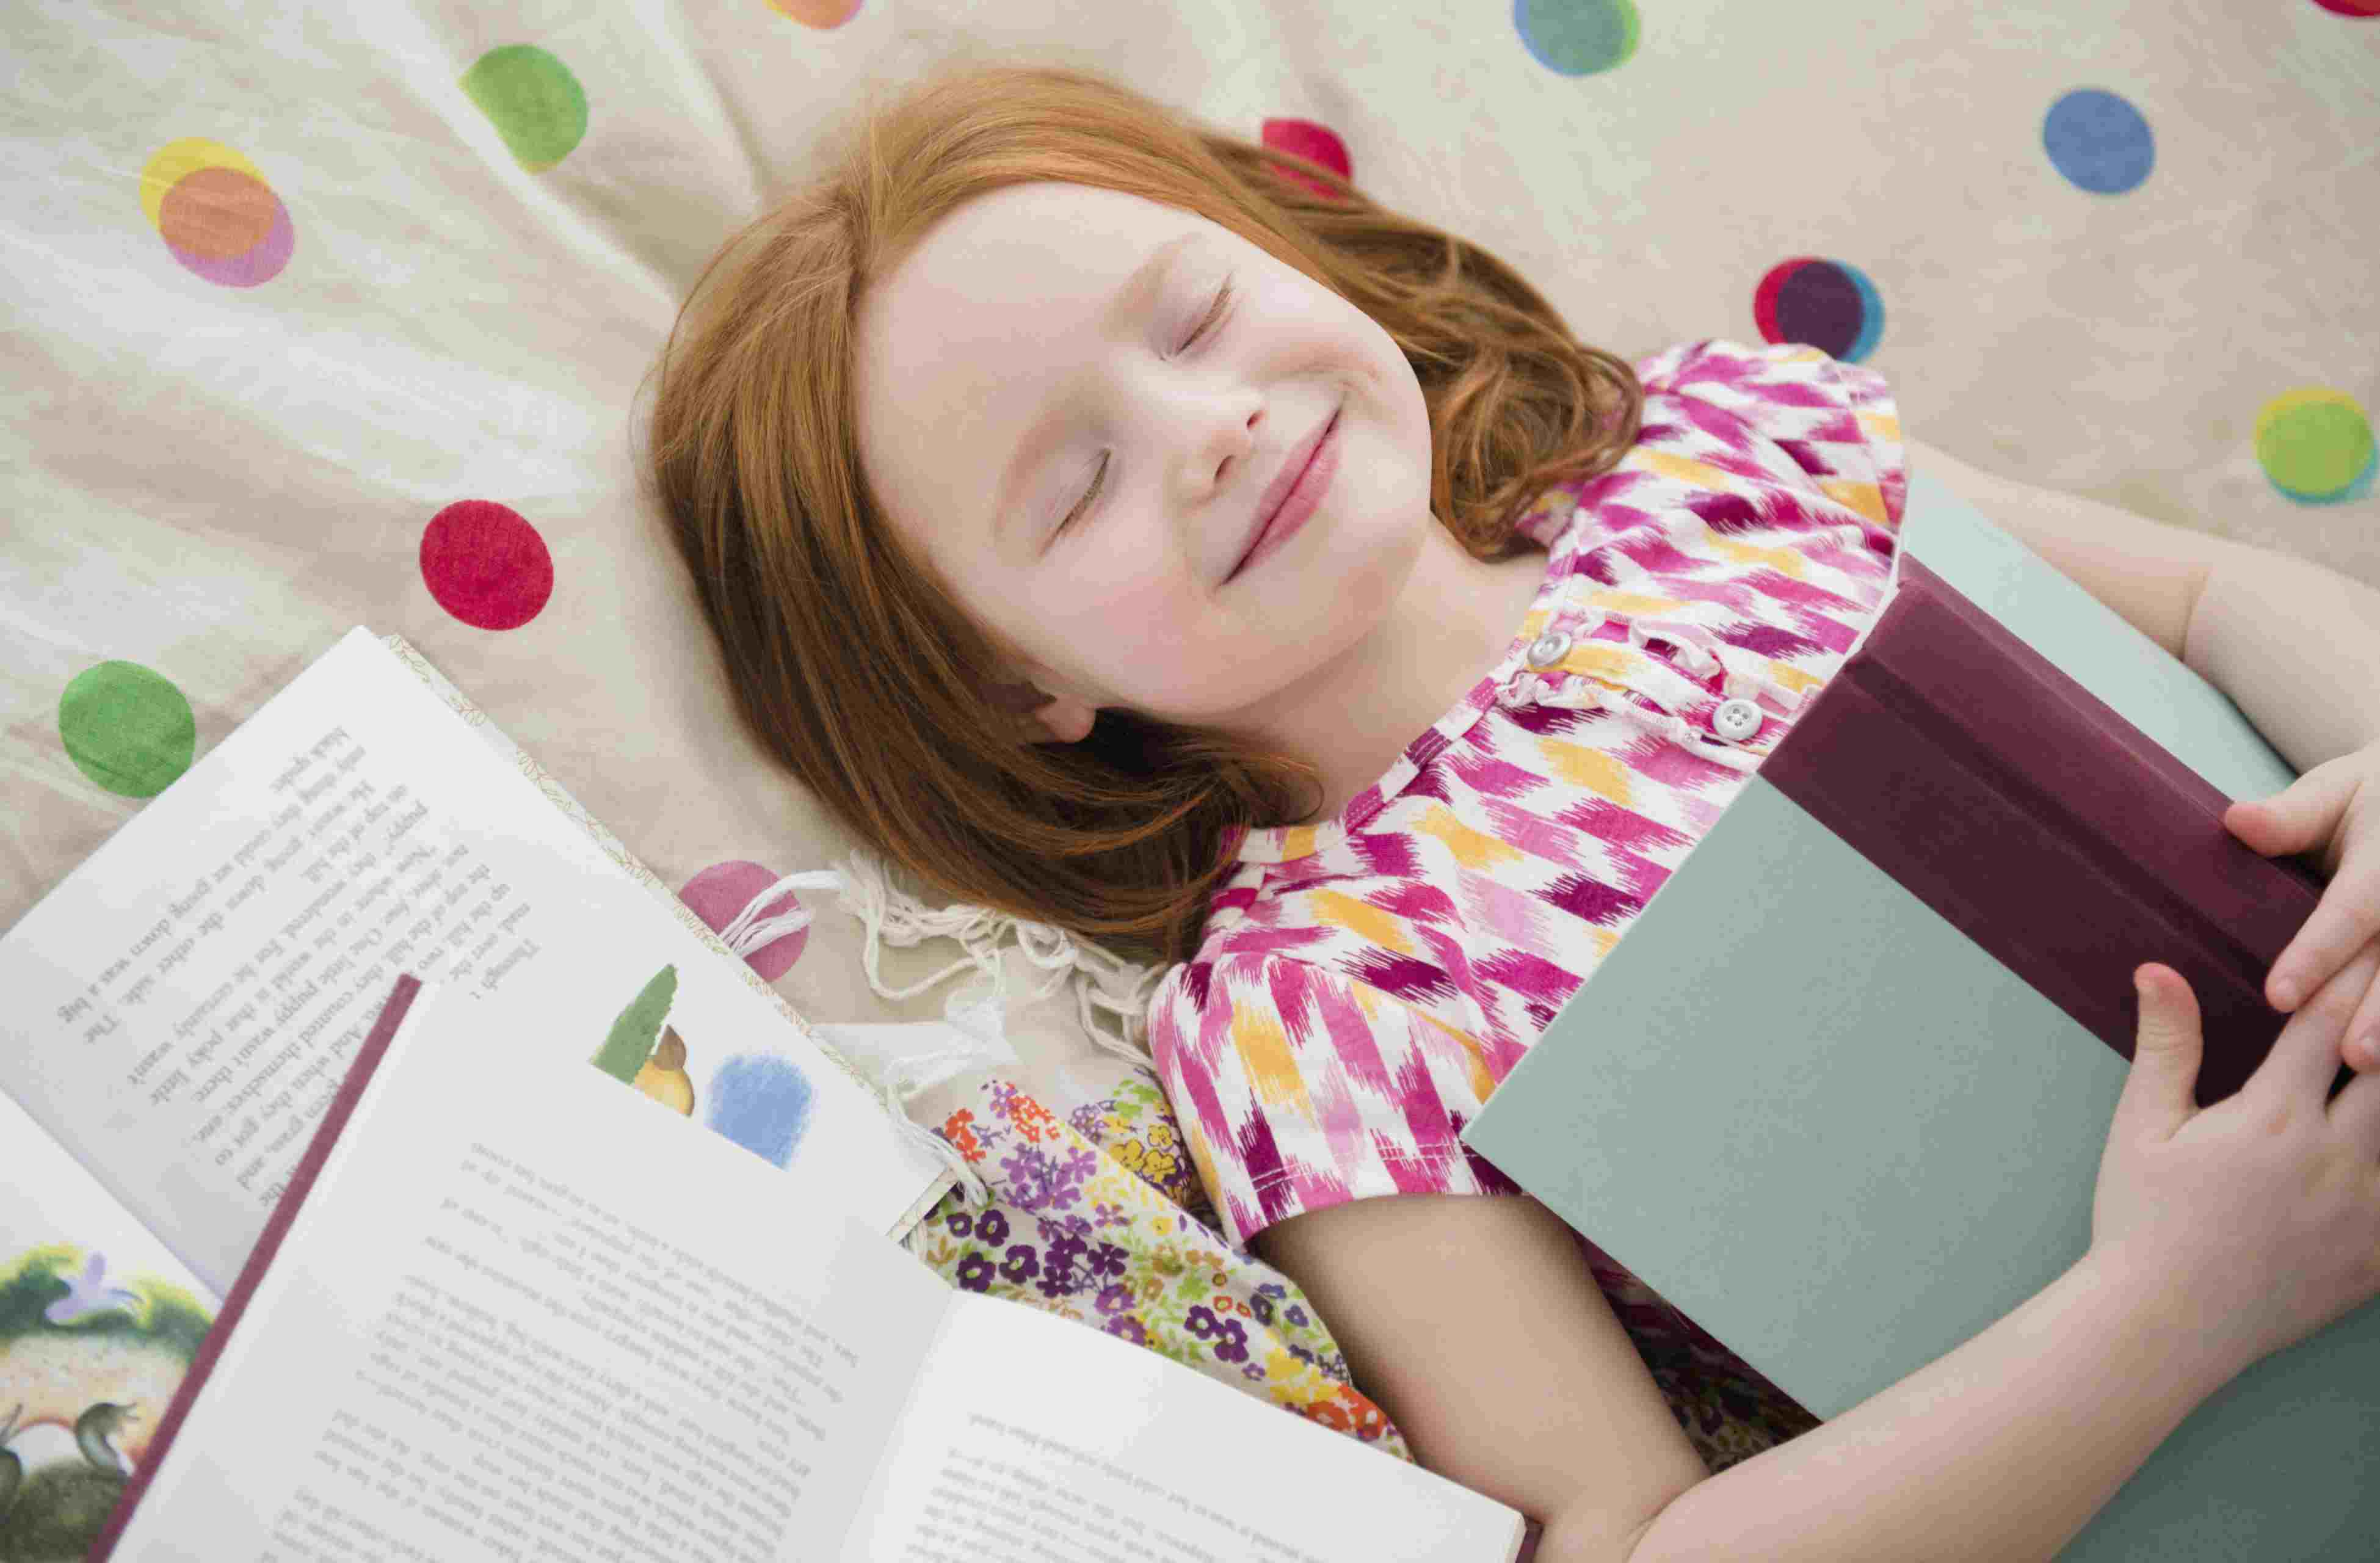 girl smiling with books, loves reading